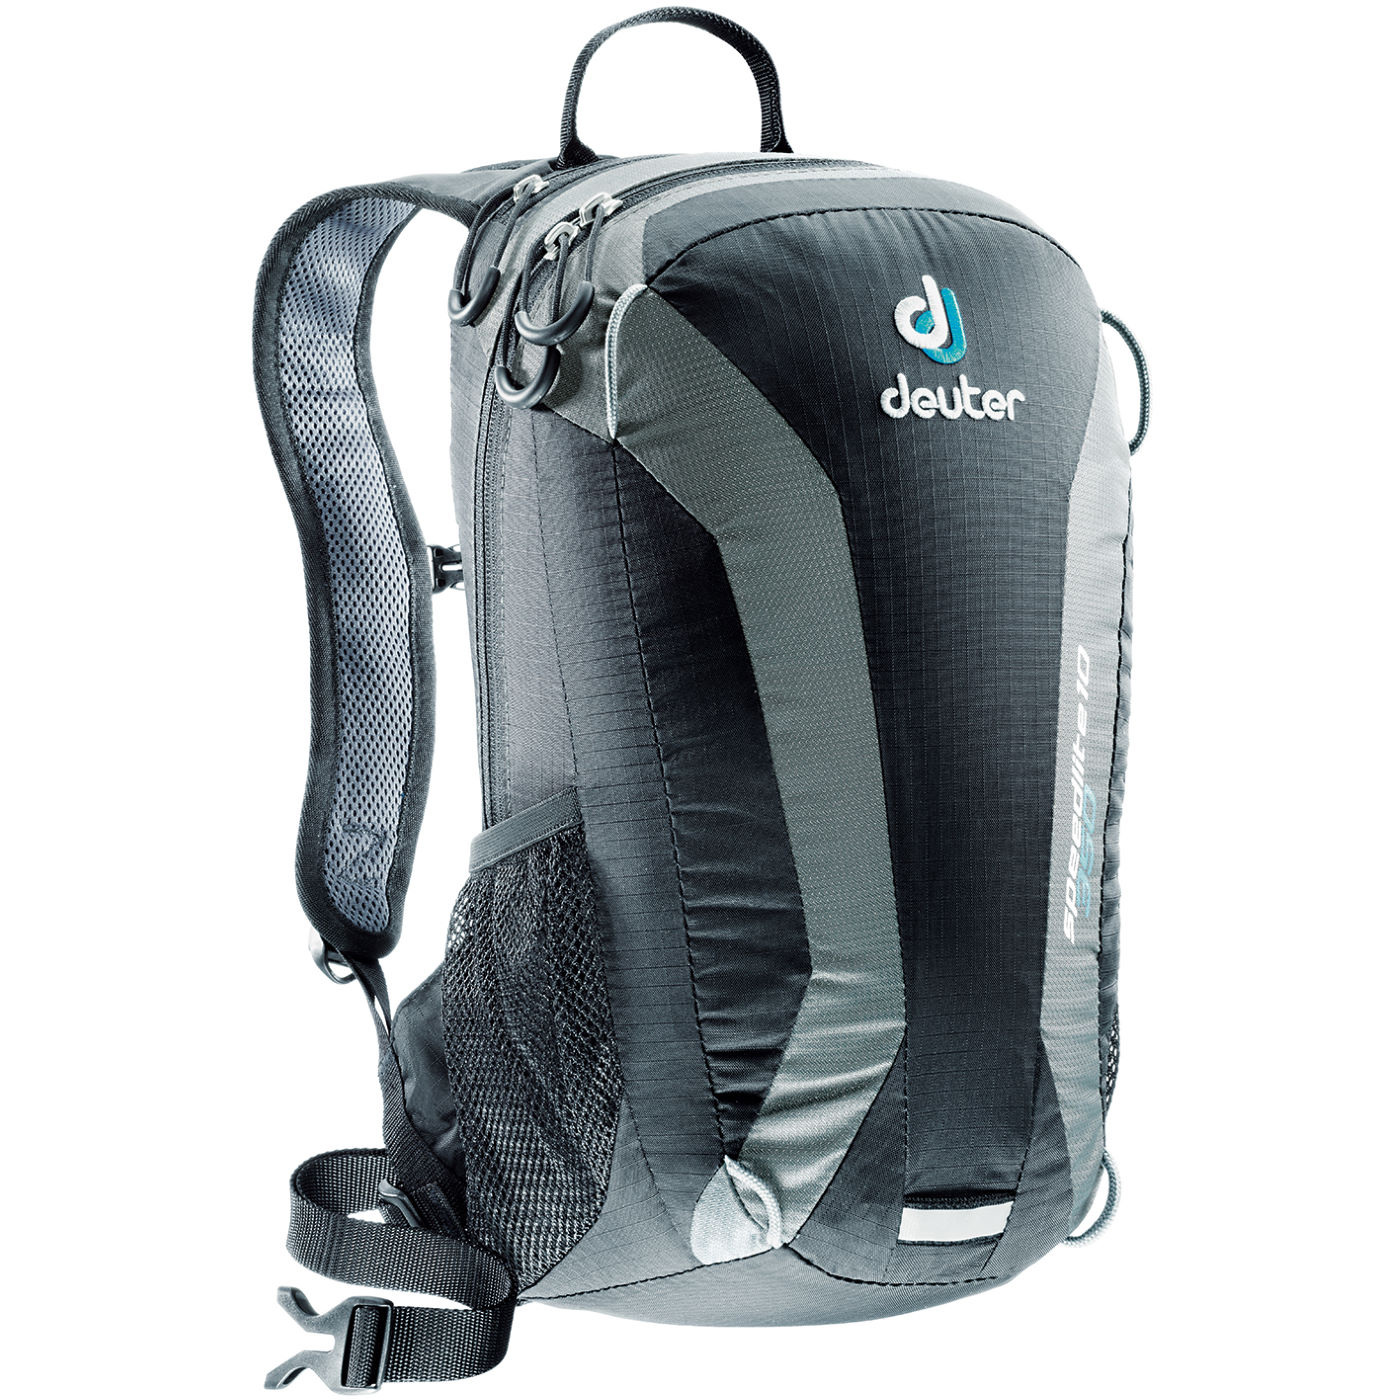 deuter speed lite rucksack 10 l f r trinksystem geeignet. Black Bedroom Furniture Sets. Home Design Ideas